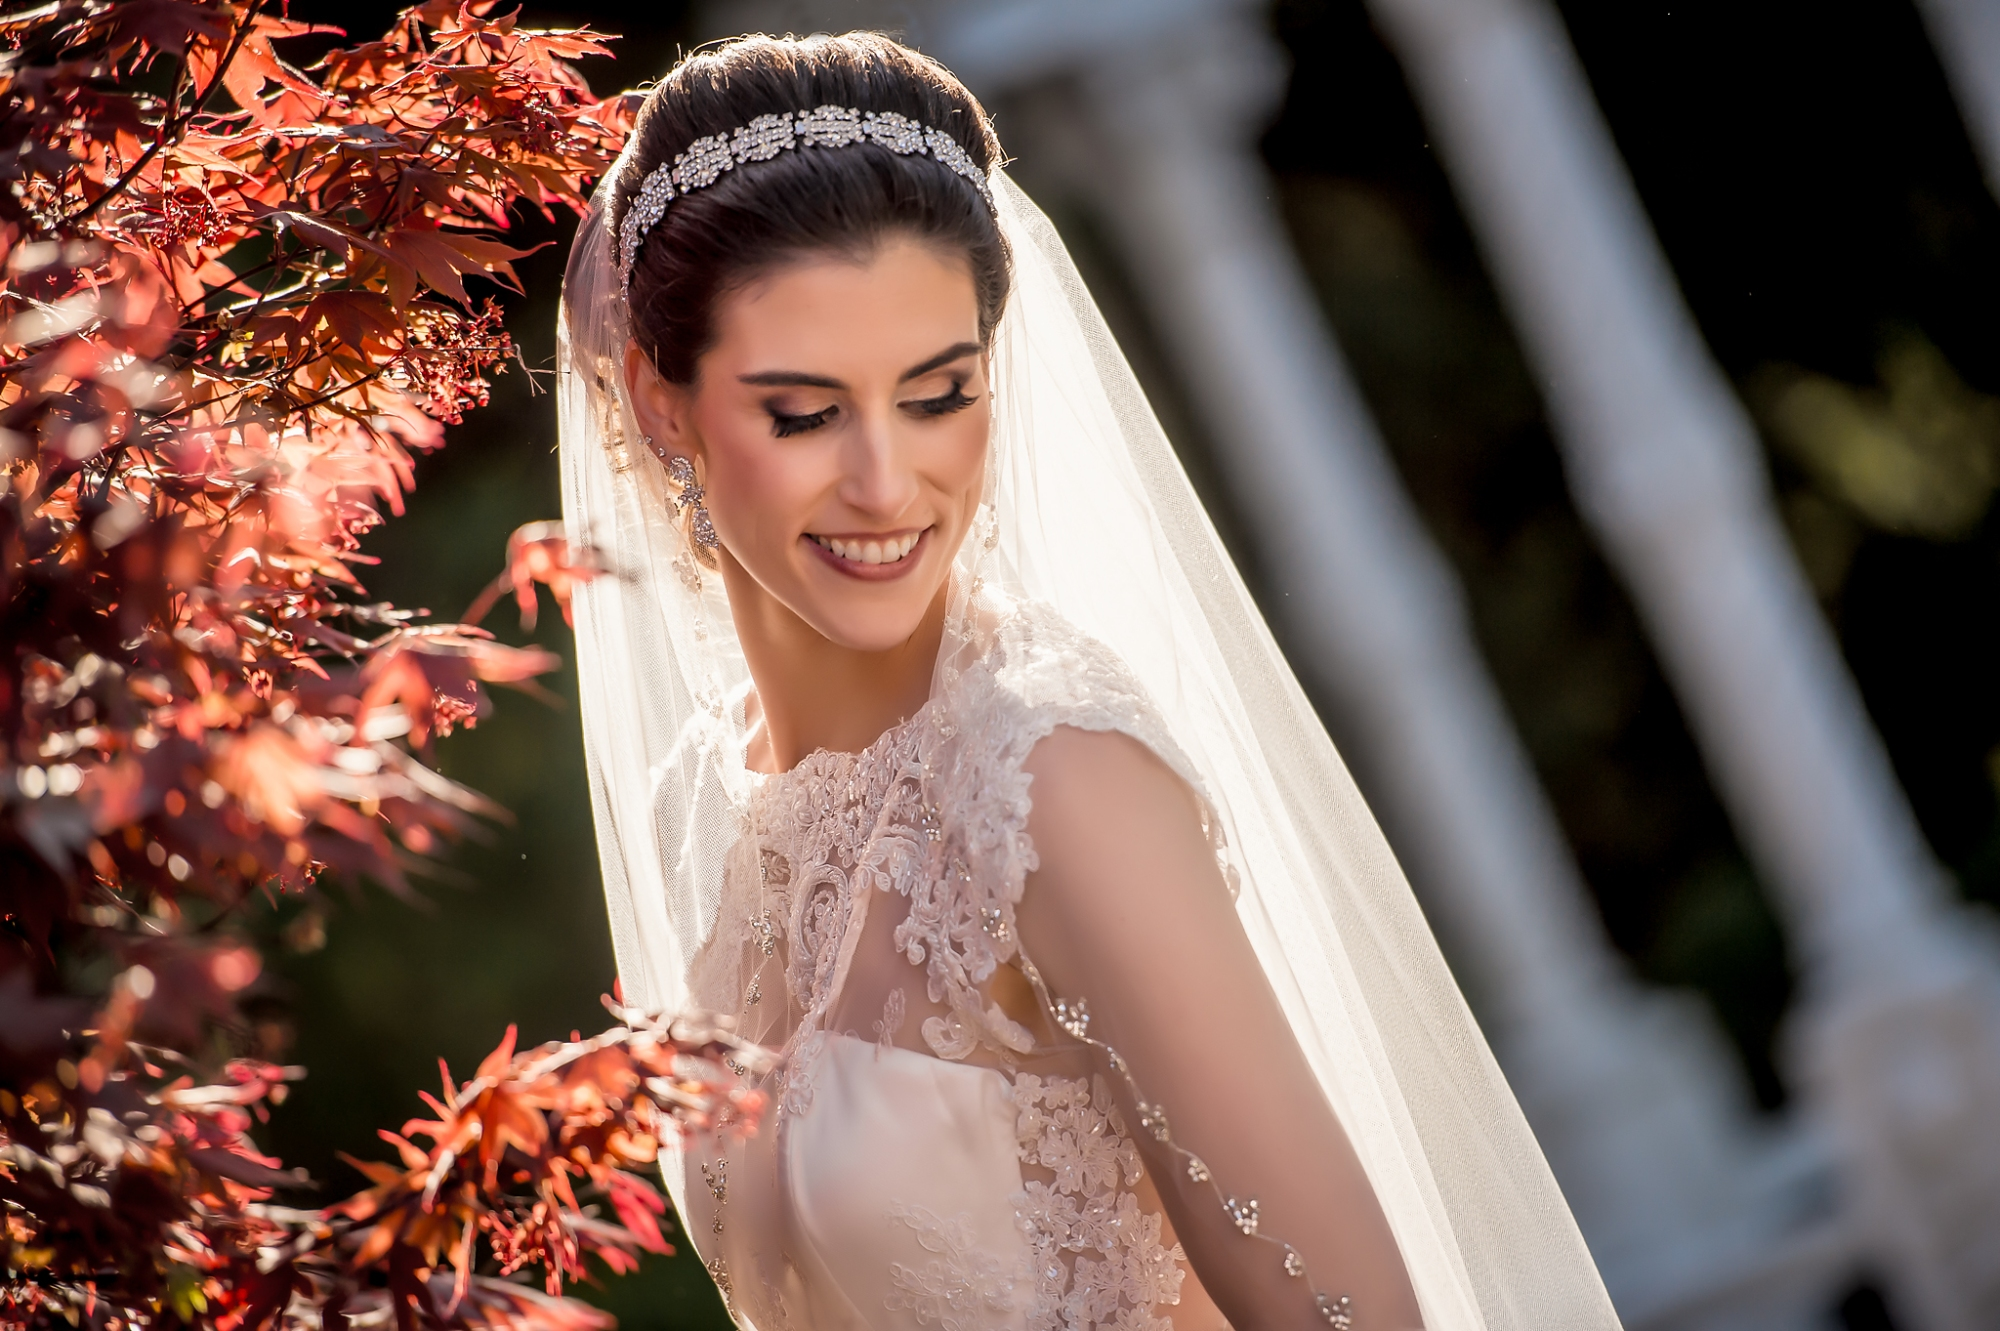 The-Primavera-Regency-Wedding-Photographer-67